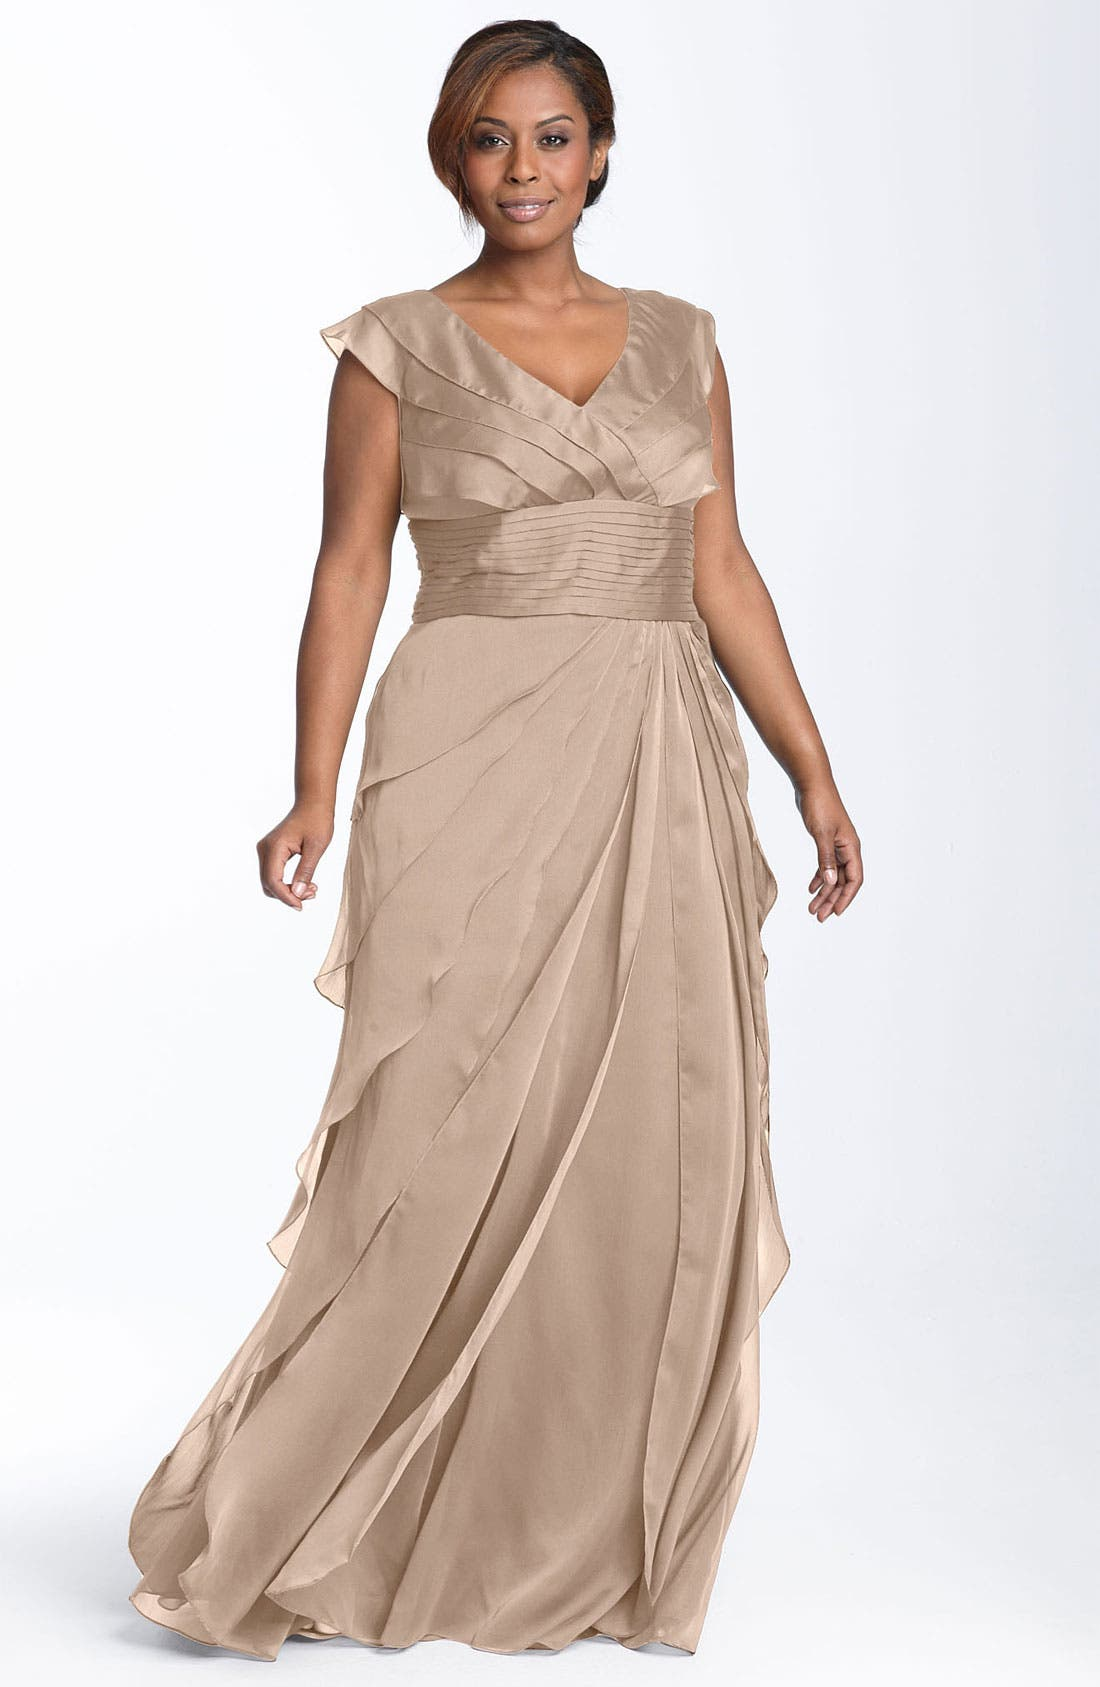 Alternate Image 1 Selected - Adrianna Papell Iridescent Chiffon Petal Gown (Plus Size)